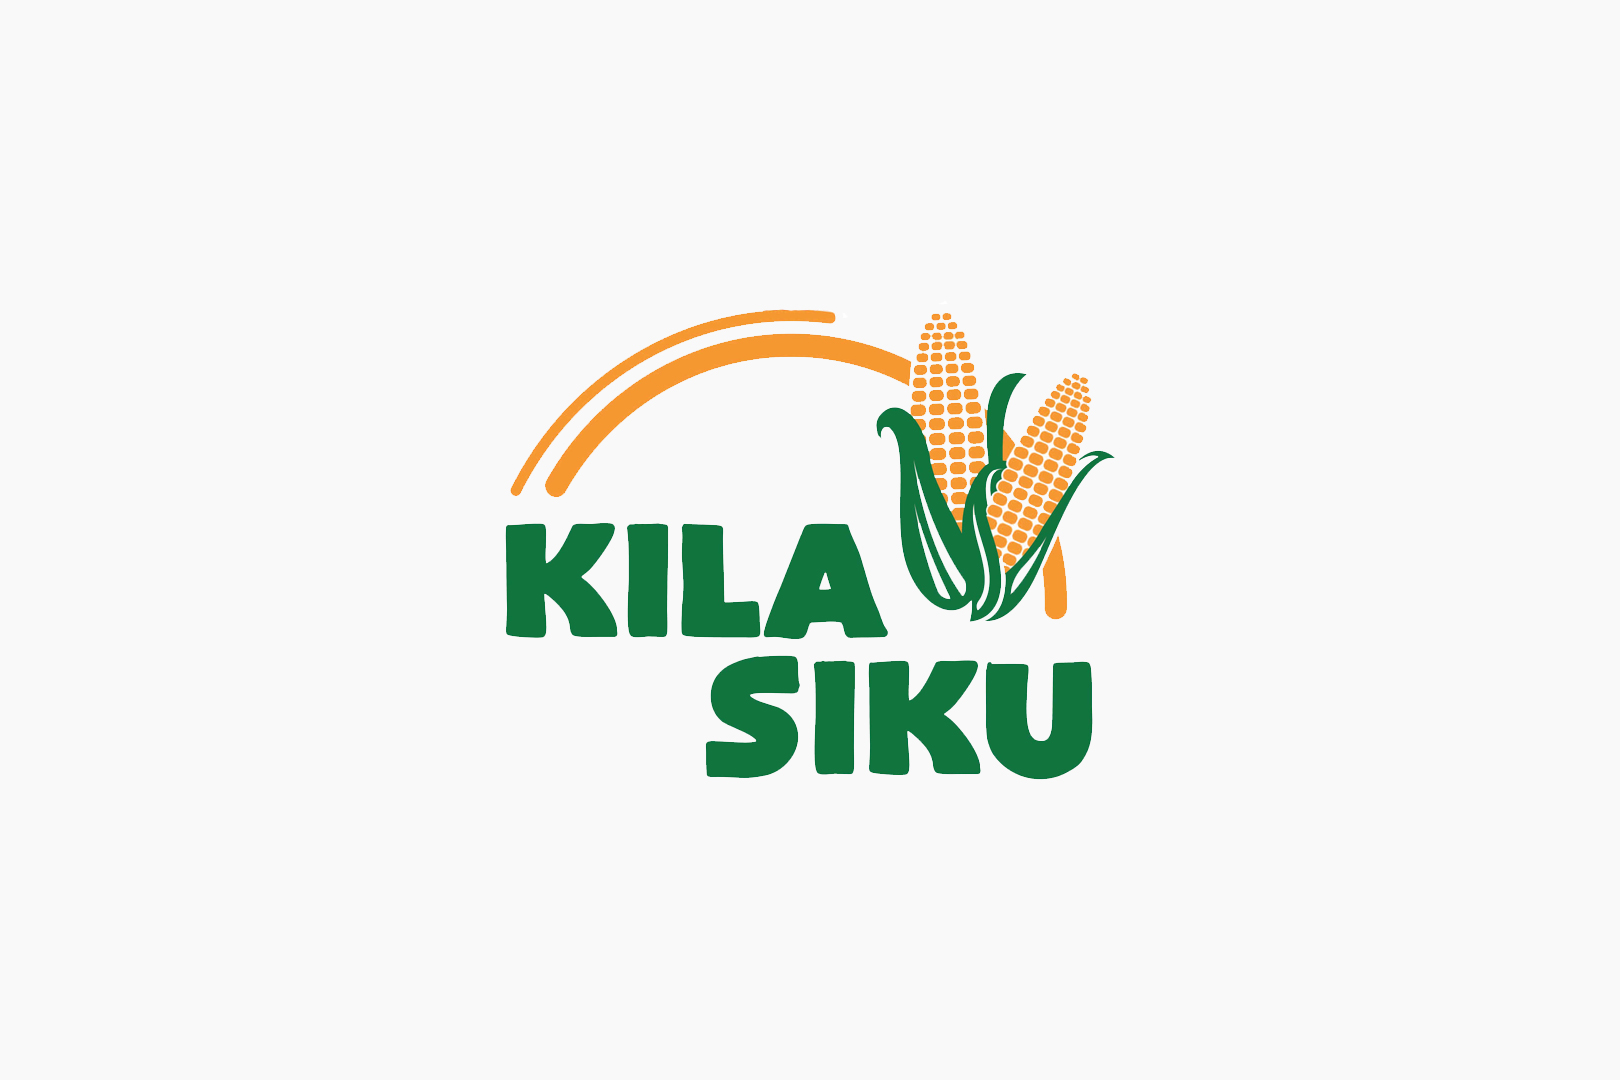 """""""Kila Siku"""" - the swahili word for 'everyday' is a favorite amongst all bukari-lovers in the region. It stands for a quality product at a value price - something that can be consumed 'every-day' of the year. Available in 25kg and the handy 'meka' packaging."""